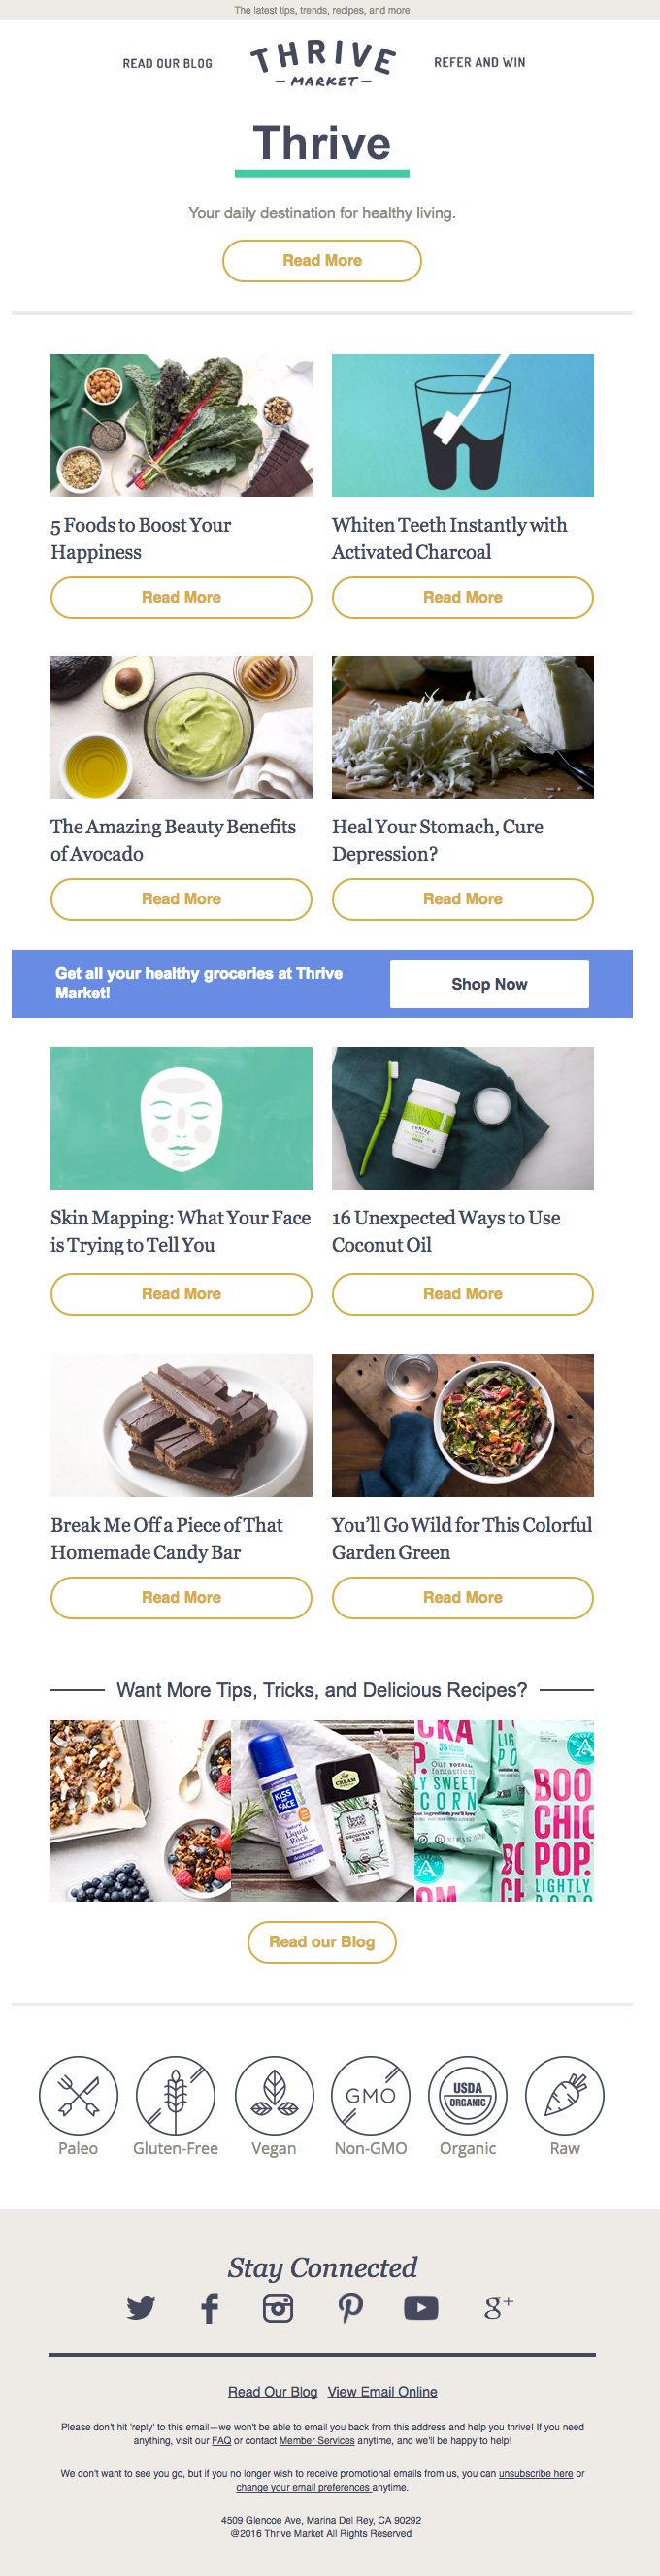 Discover the latest health trends on Thrive Notebook